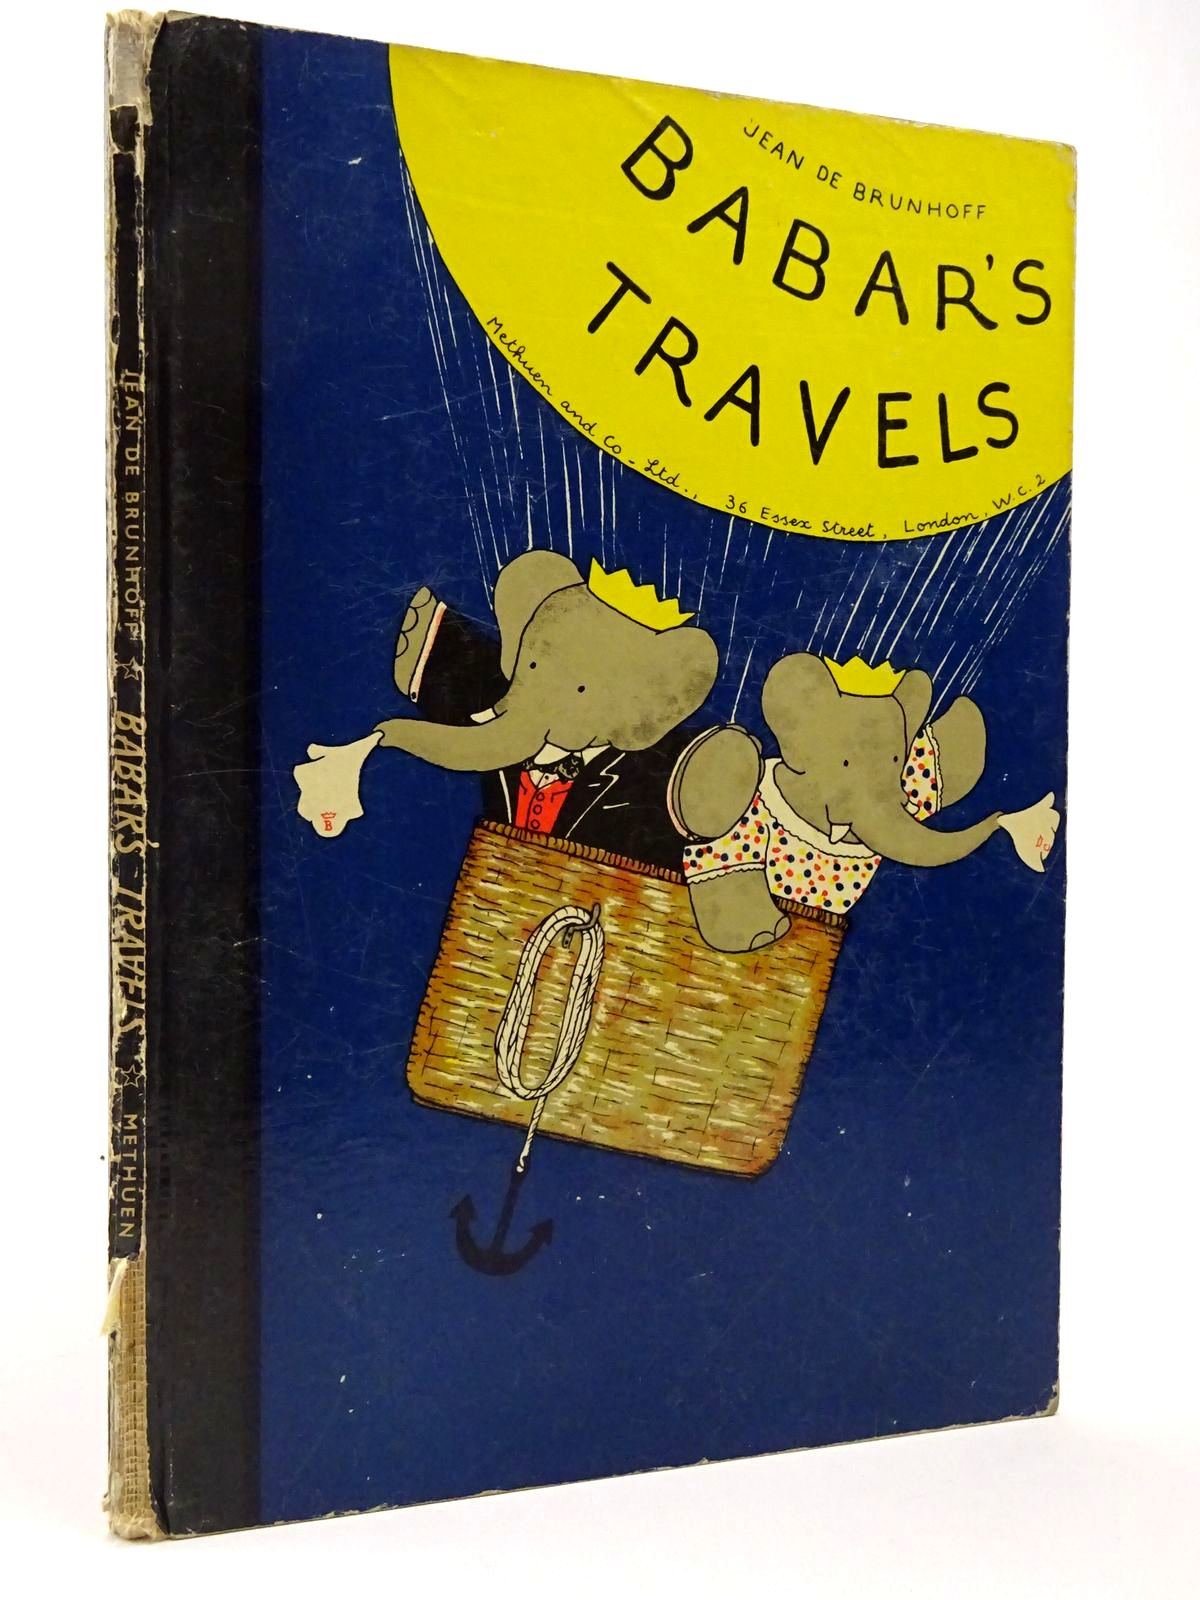 Photo of BABAR'S TRAVELS written by De Brunhoff, Jean illustrated by De Brunhoff, Jean published by Methuen & Co. Ltd. (STOCK CODE: 2129828)  for sale by Stella & Rose's Books